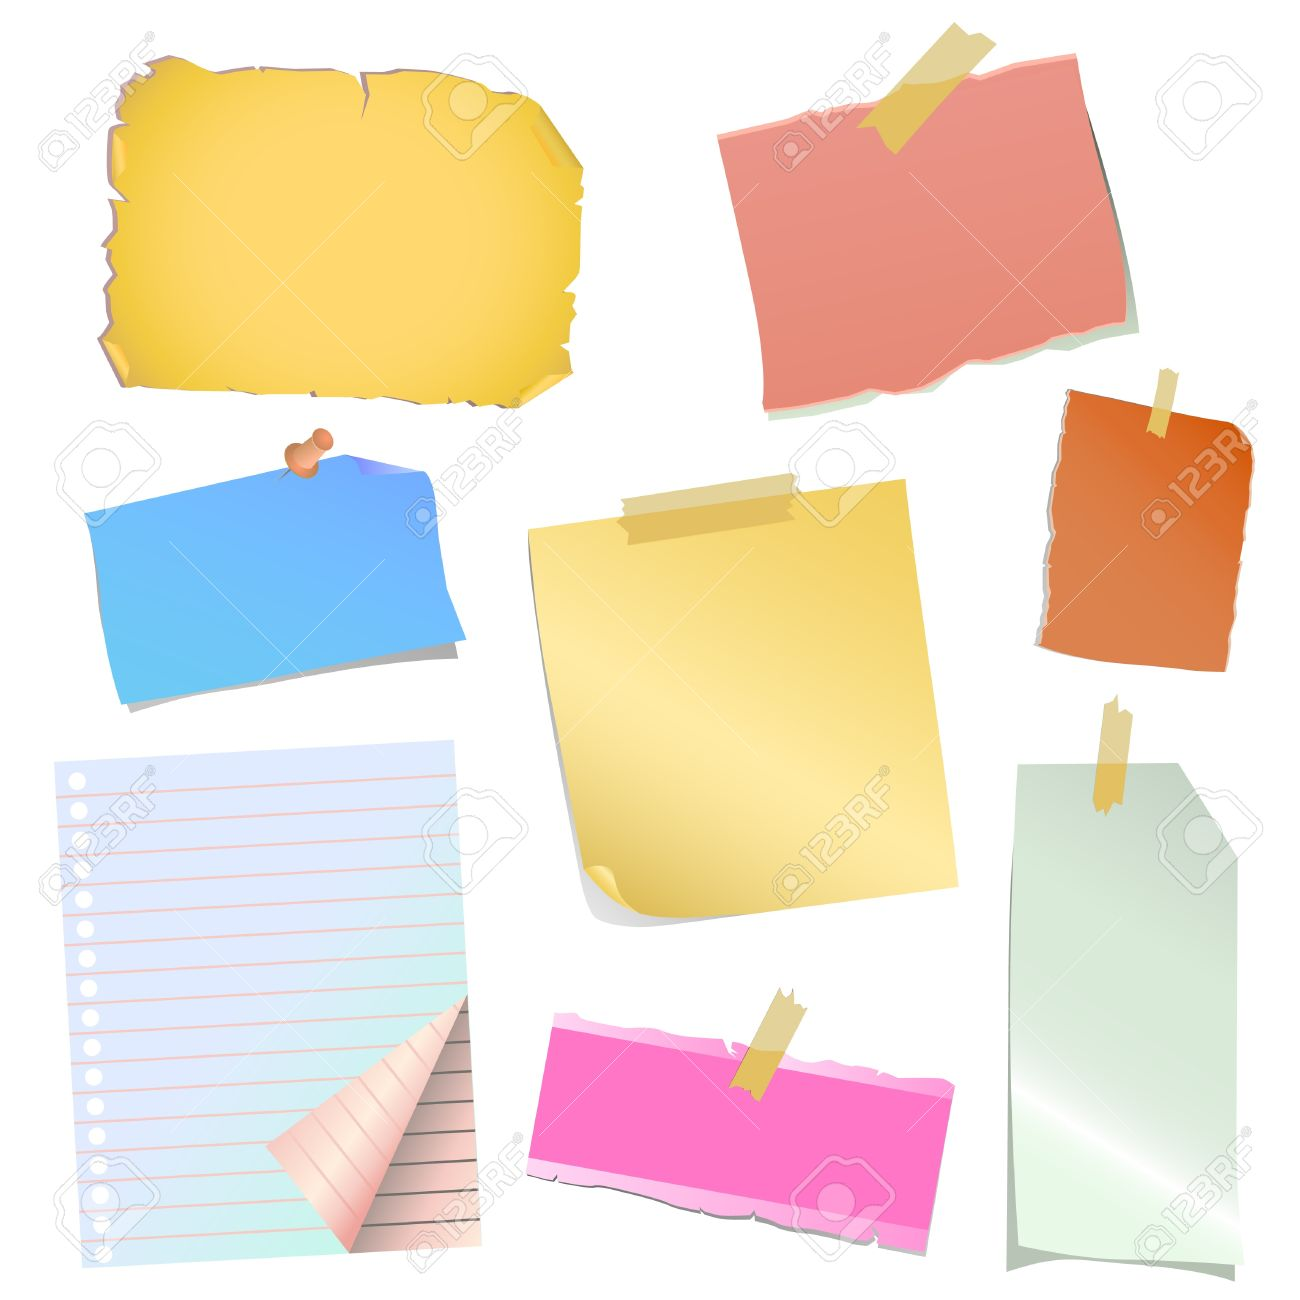 Free vector graphic sticky note note info paper free image on - Sticky Notes Note Paper Vector Illustration